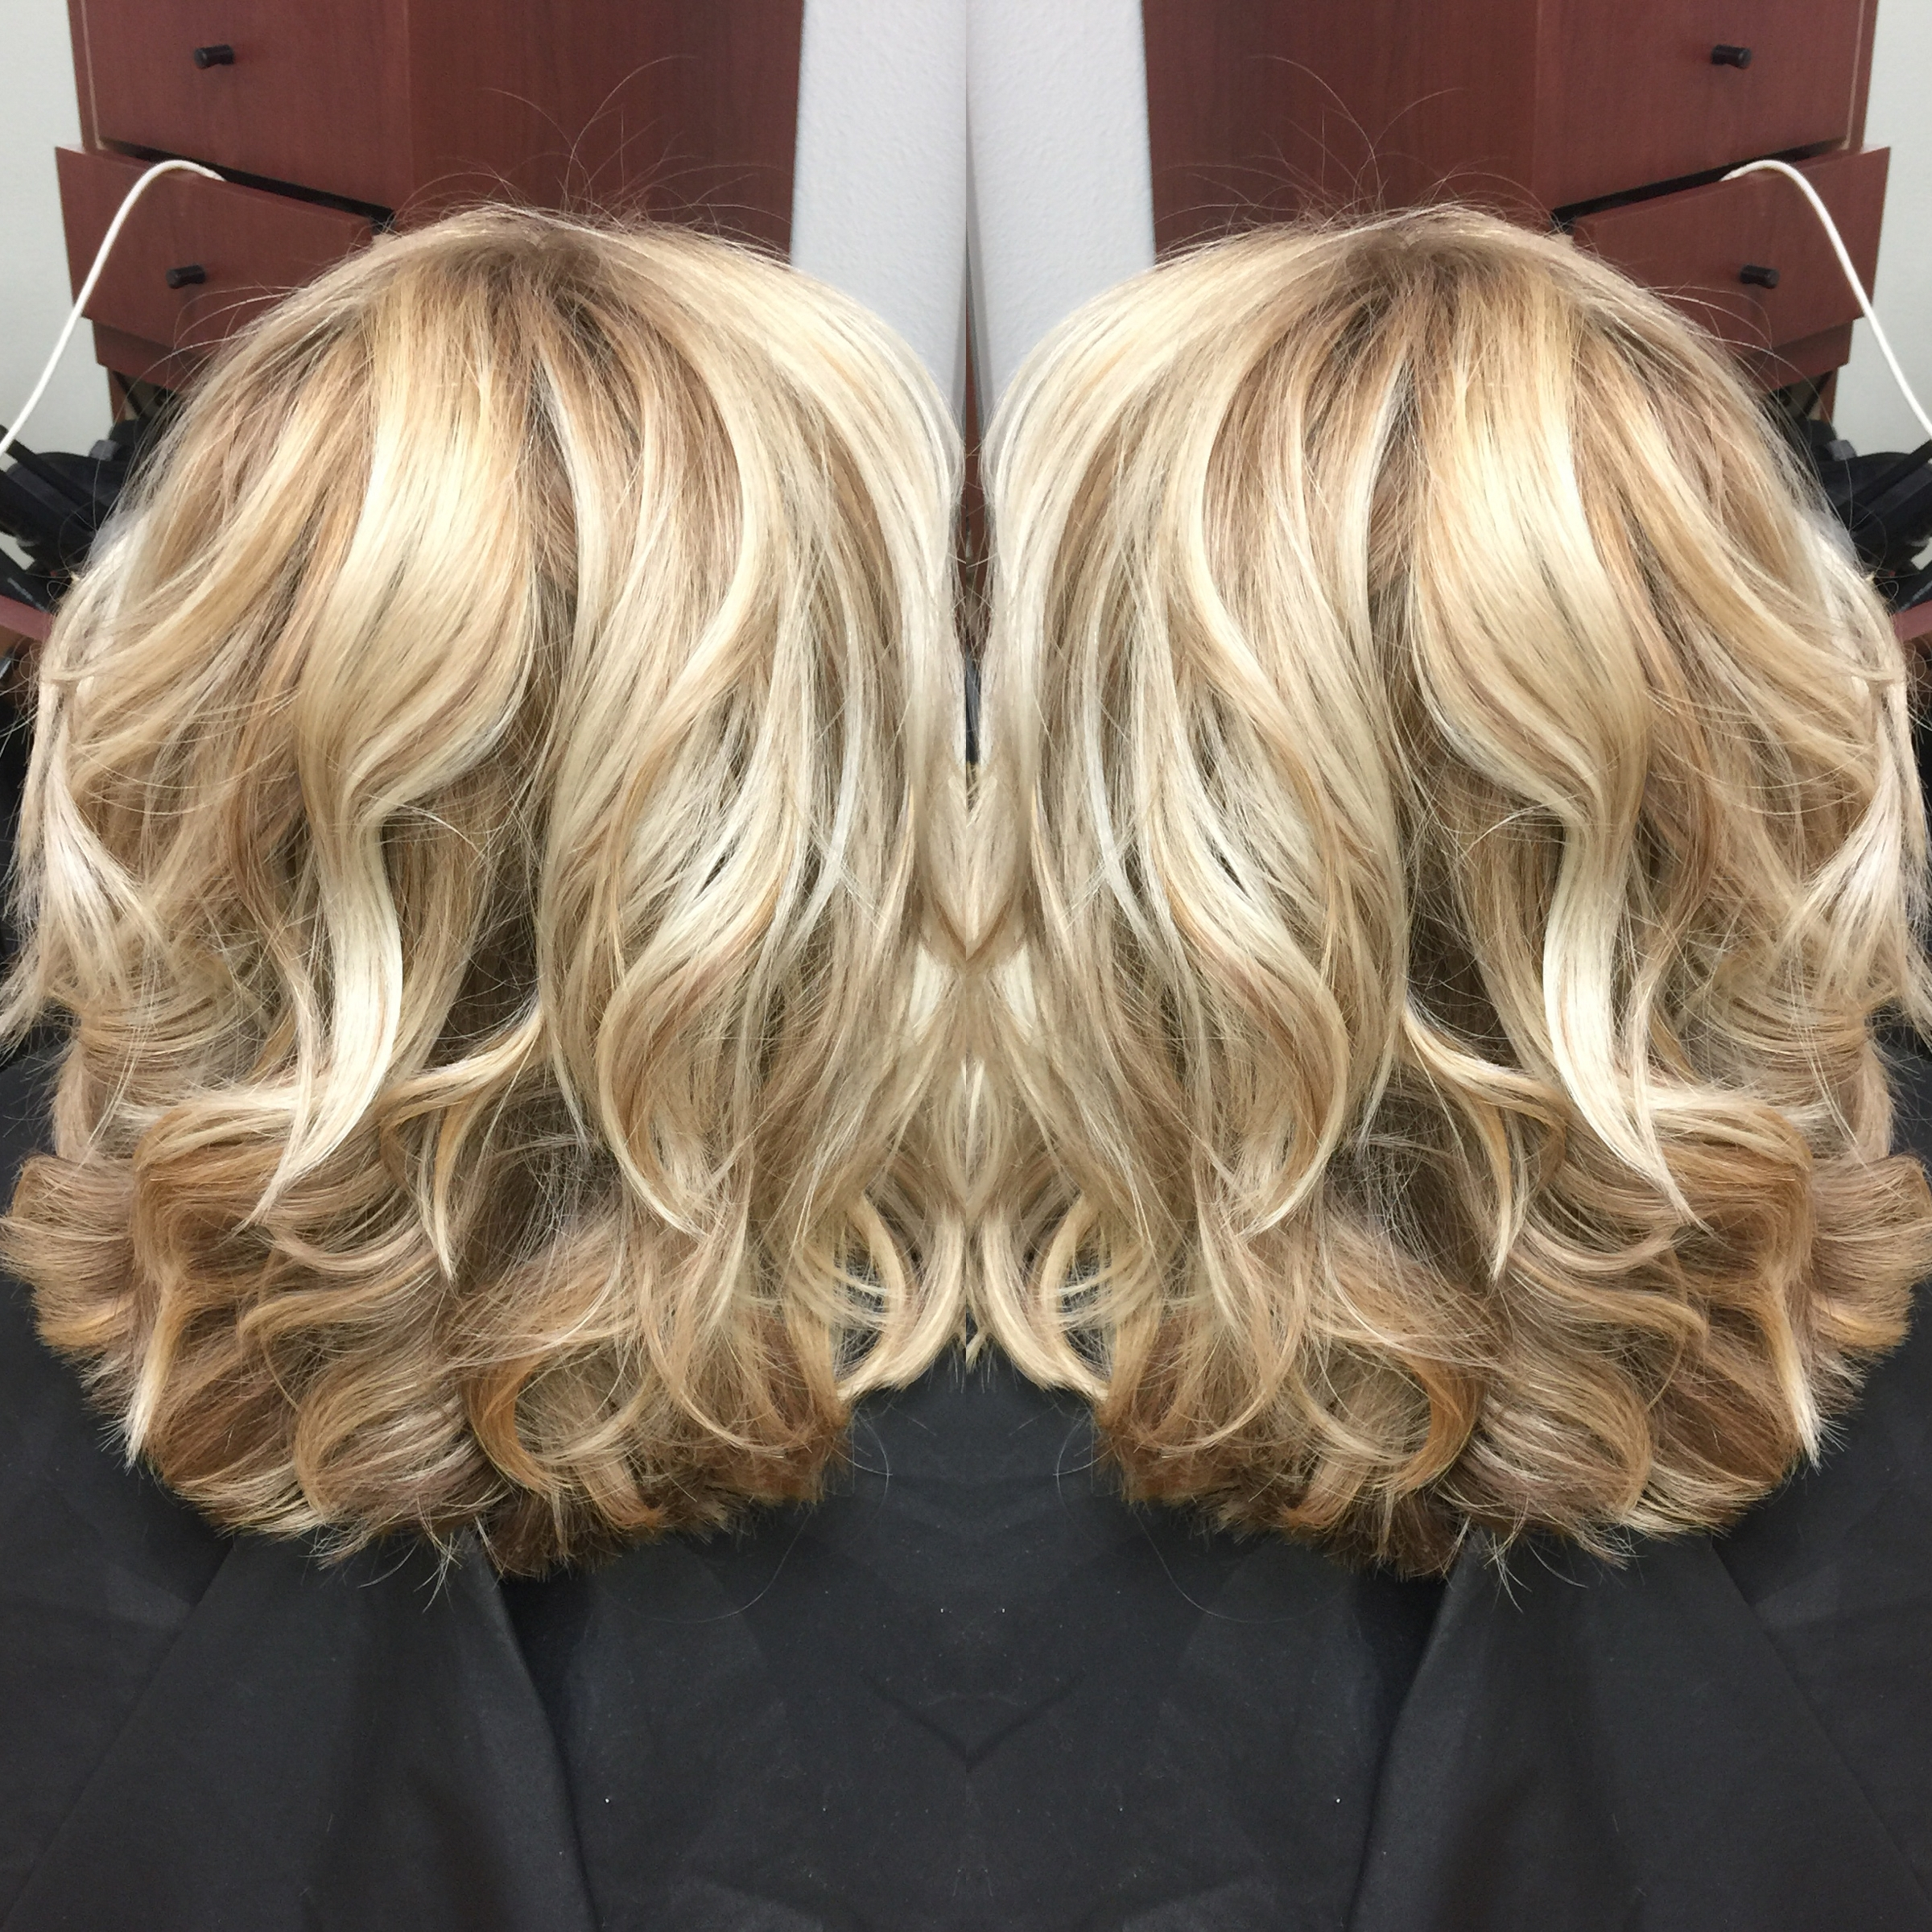 Redlands Hair Stylist Blonde Base Bump With Gold And Platinum Intended For Trendy Golden And Platinum Blonde Hairstyles (Gallery 15 of 20)